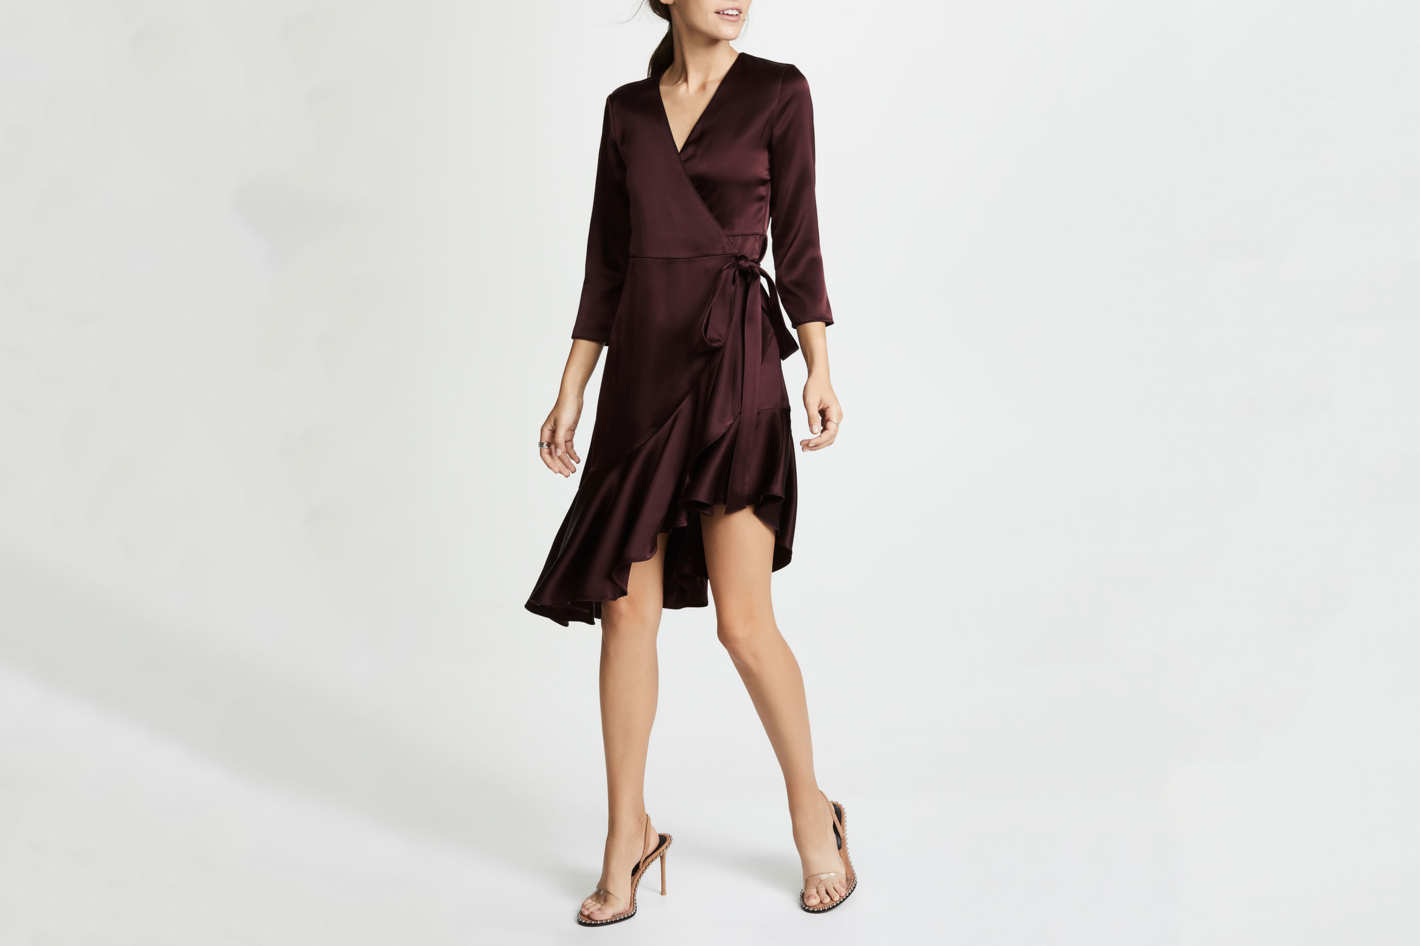 Edition10 Asymmetrical Ruffle Dress